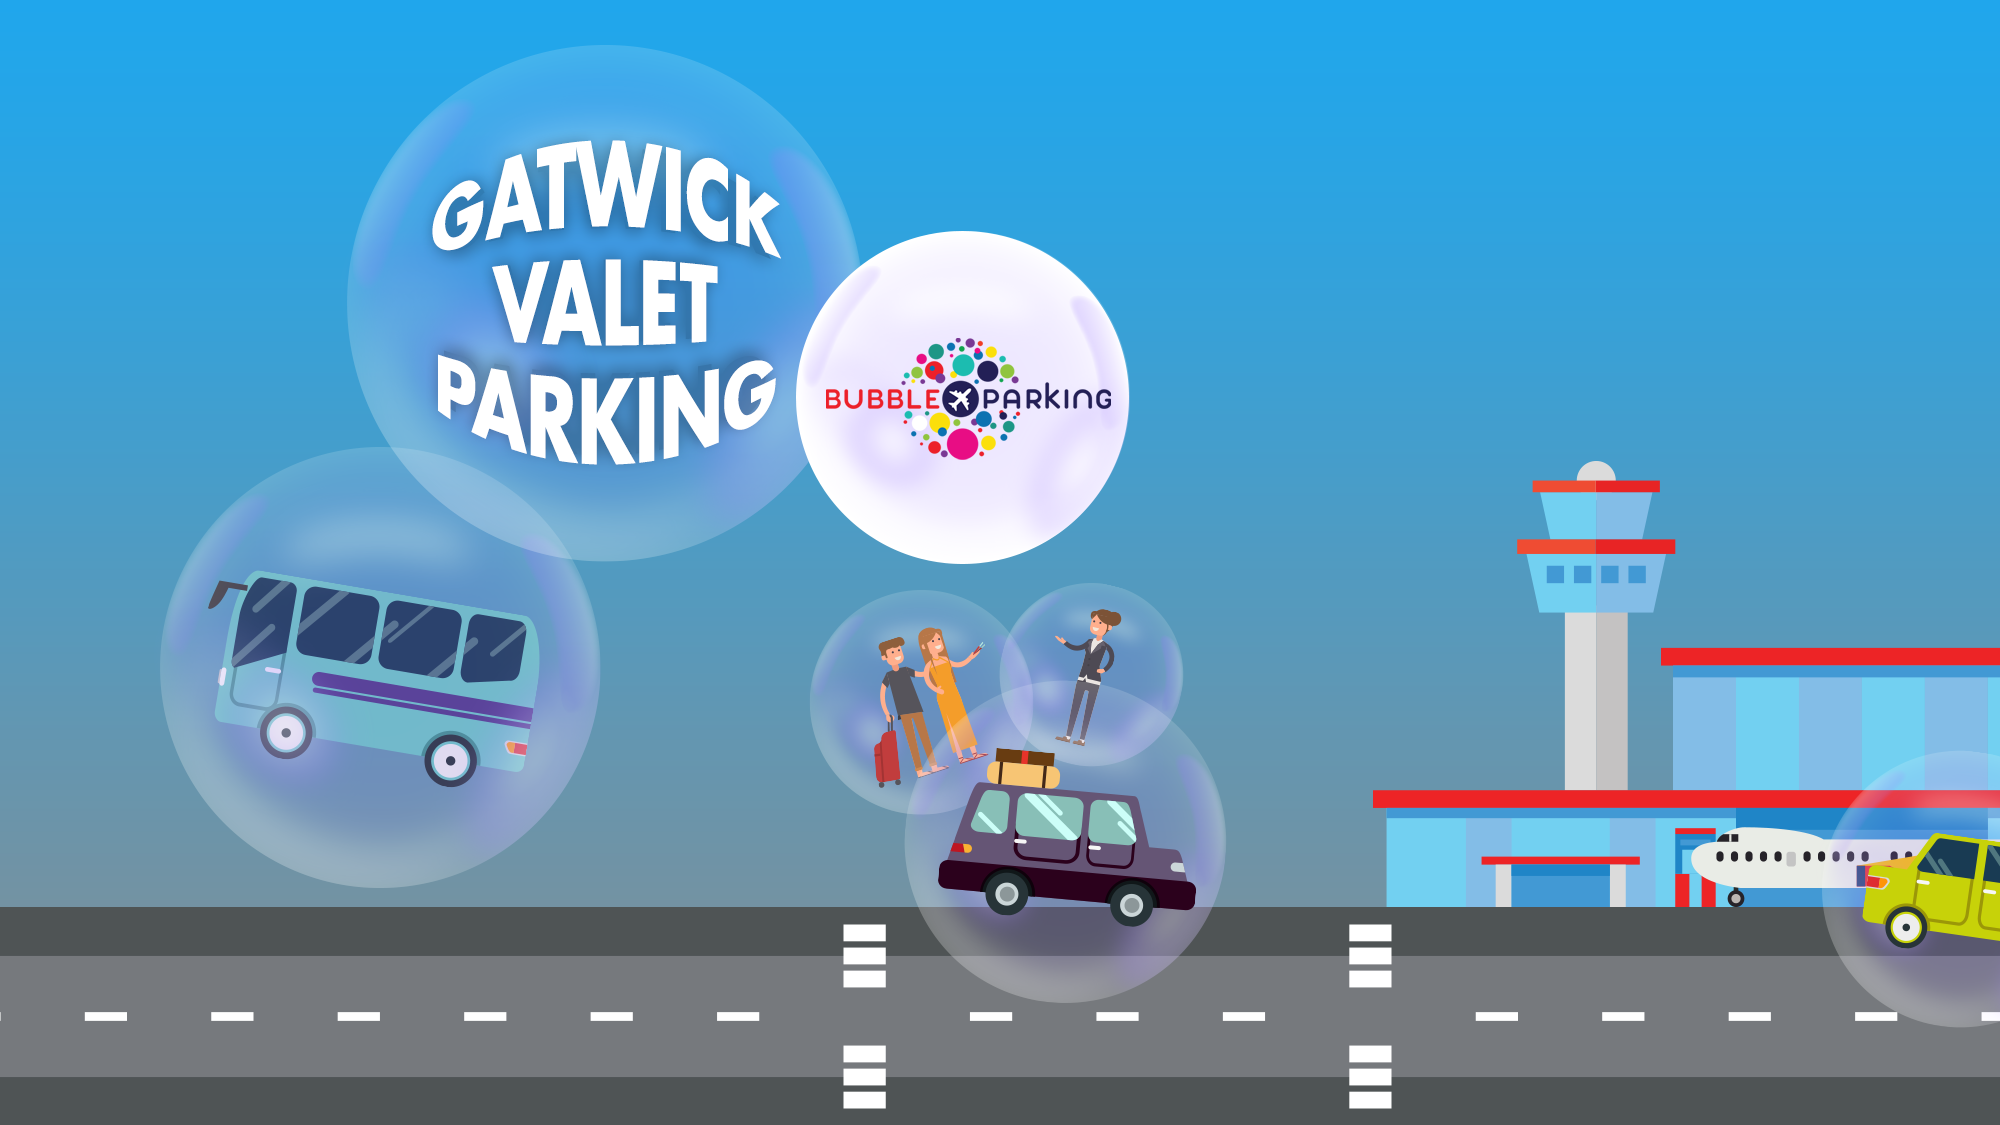 Bubble Valet Parking Gatwick Parking I Love Airport Parking